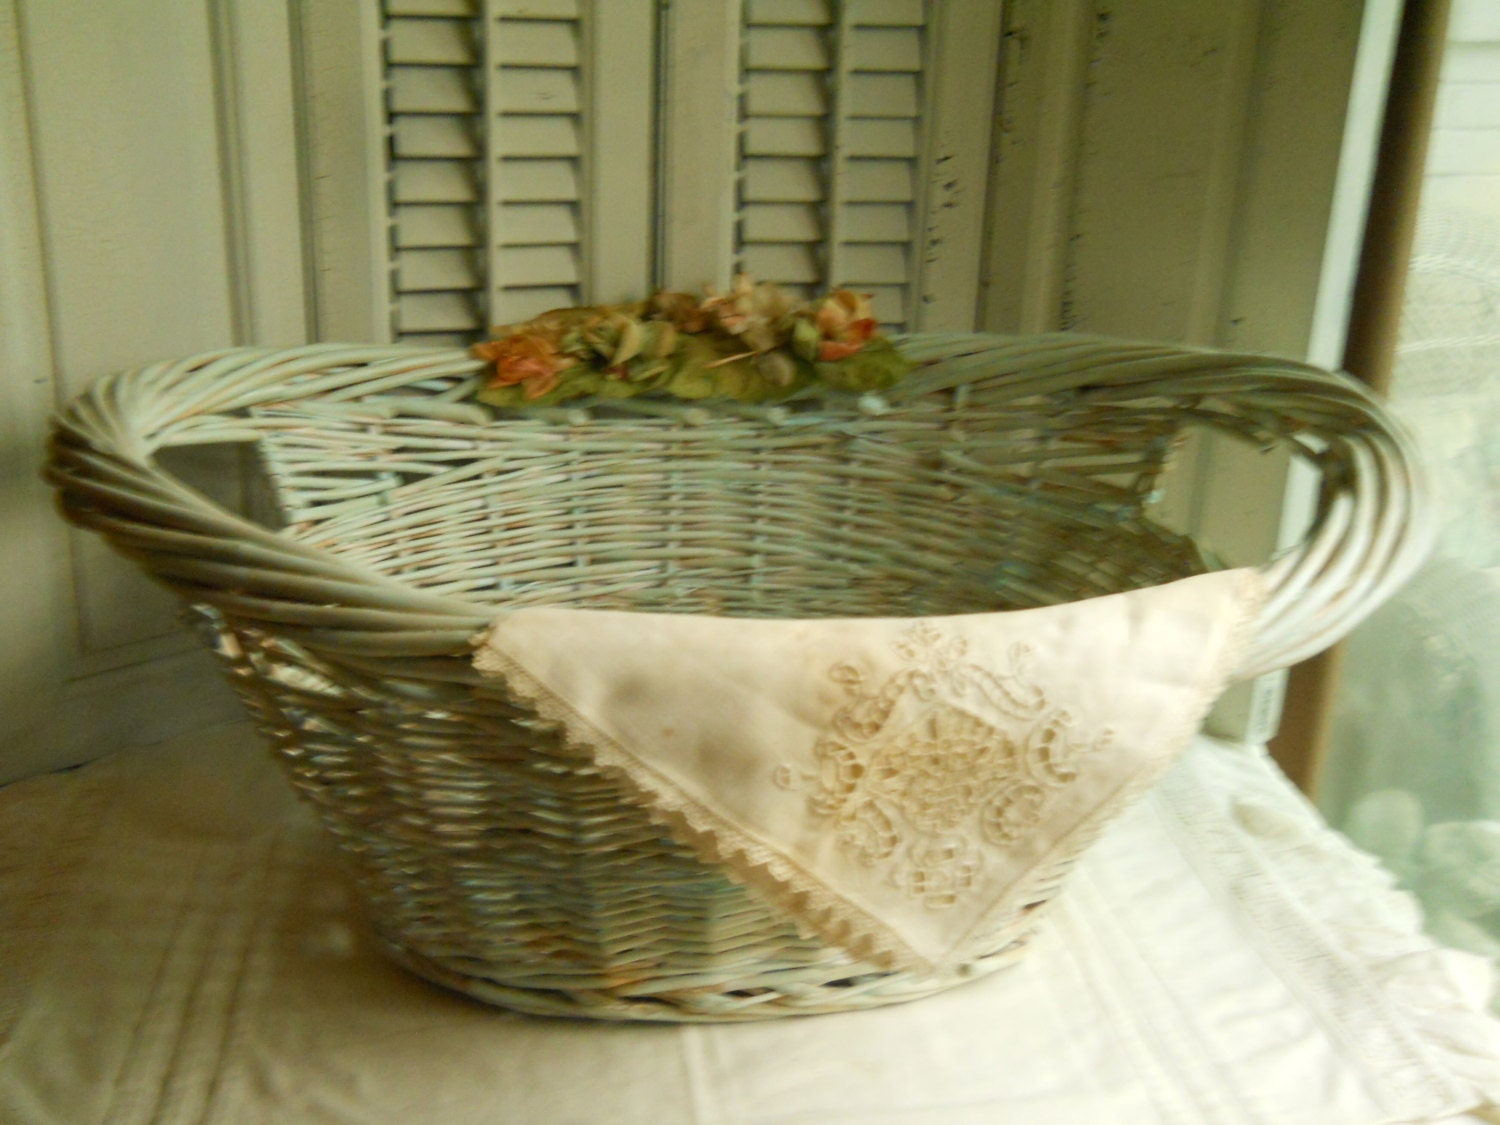 Wicker Laundry Basket With Antique Millinery Flowers And